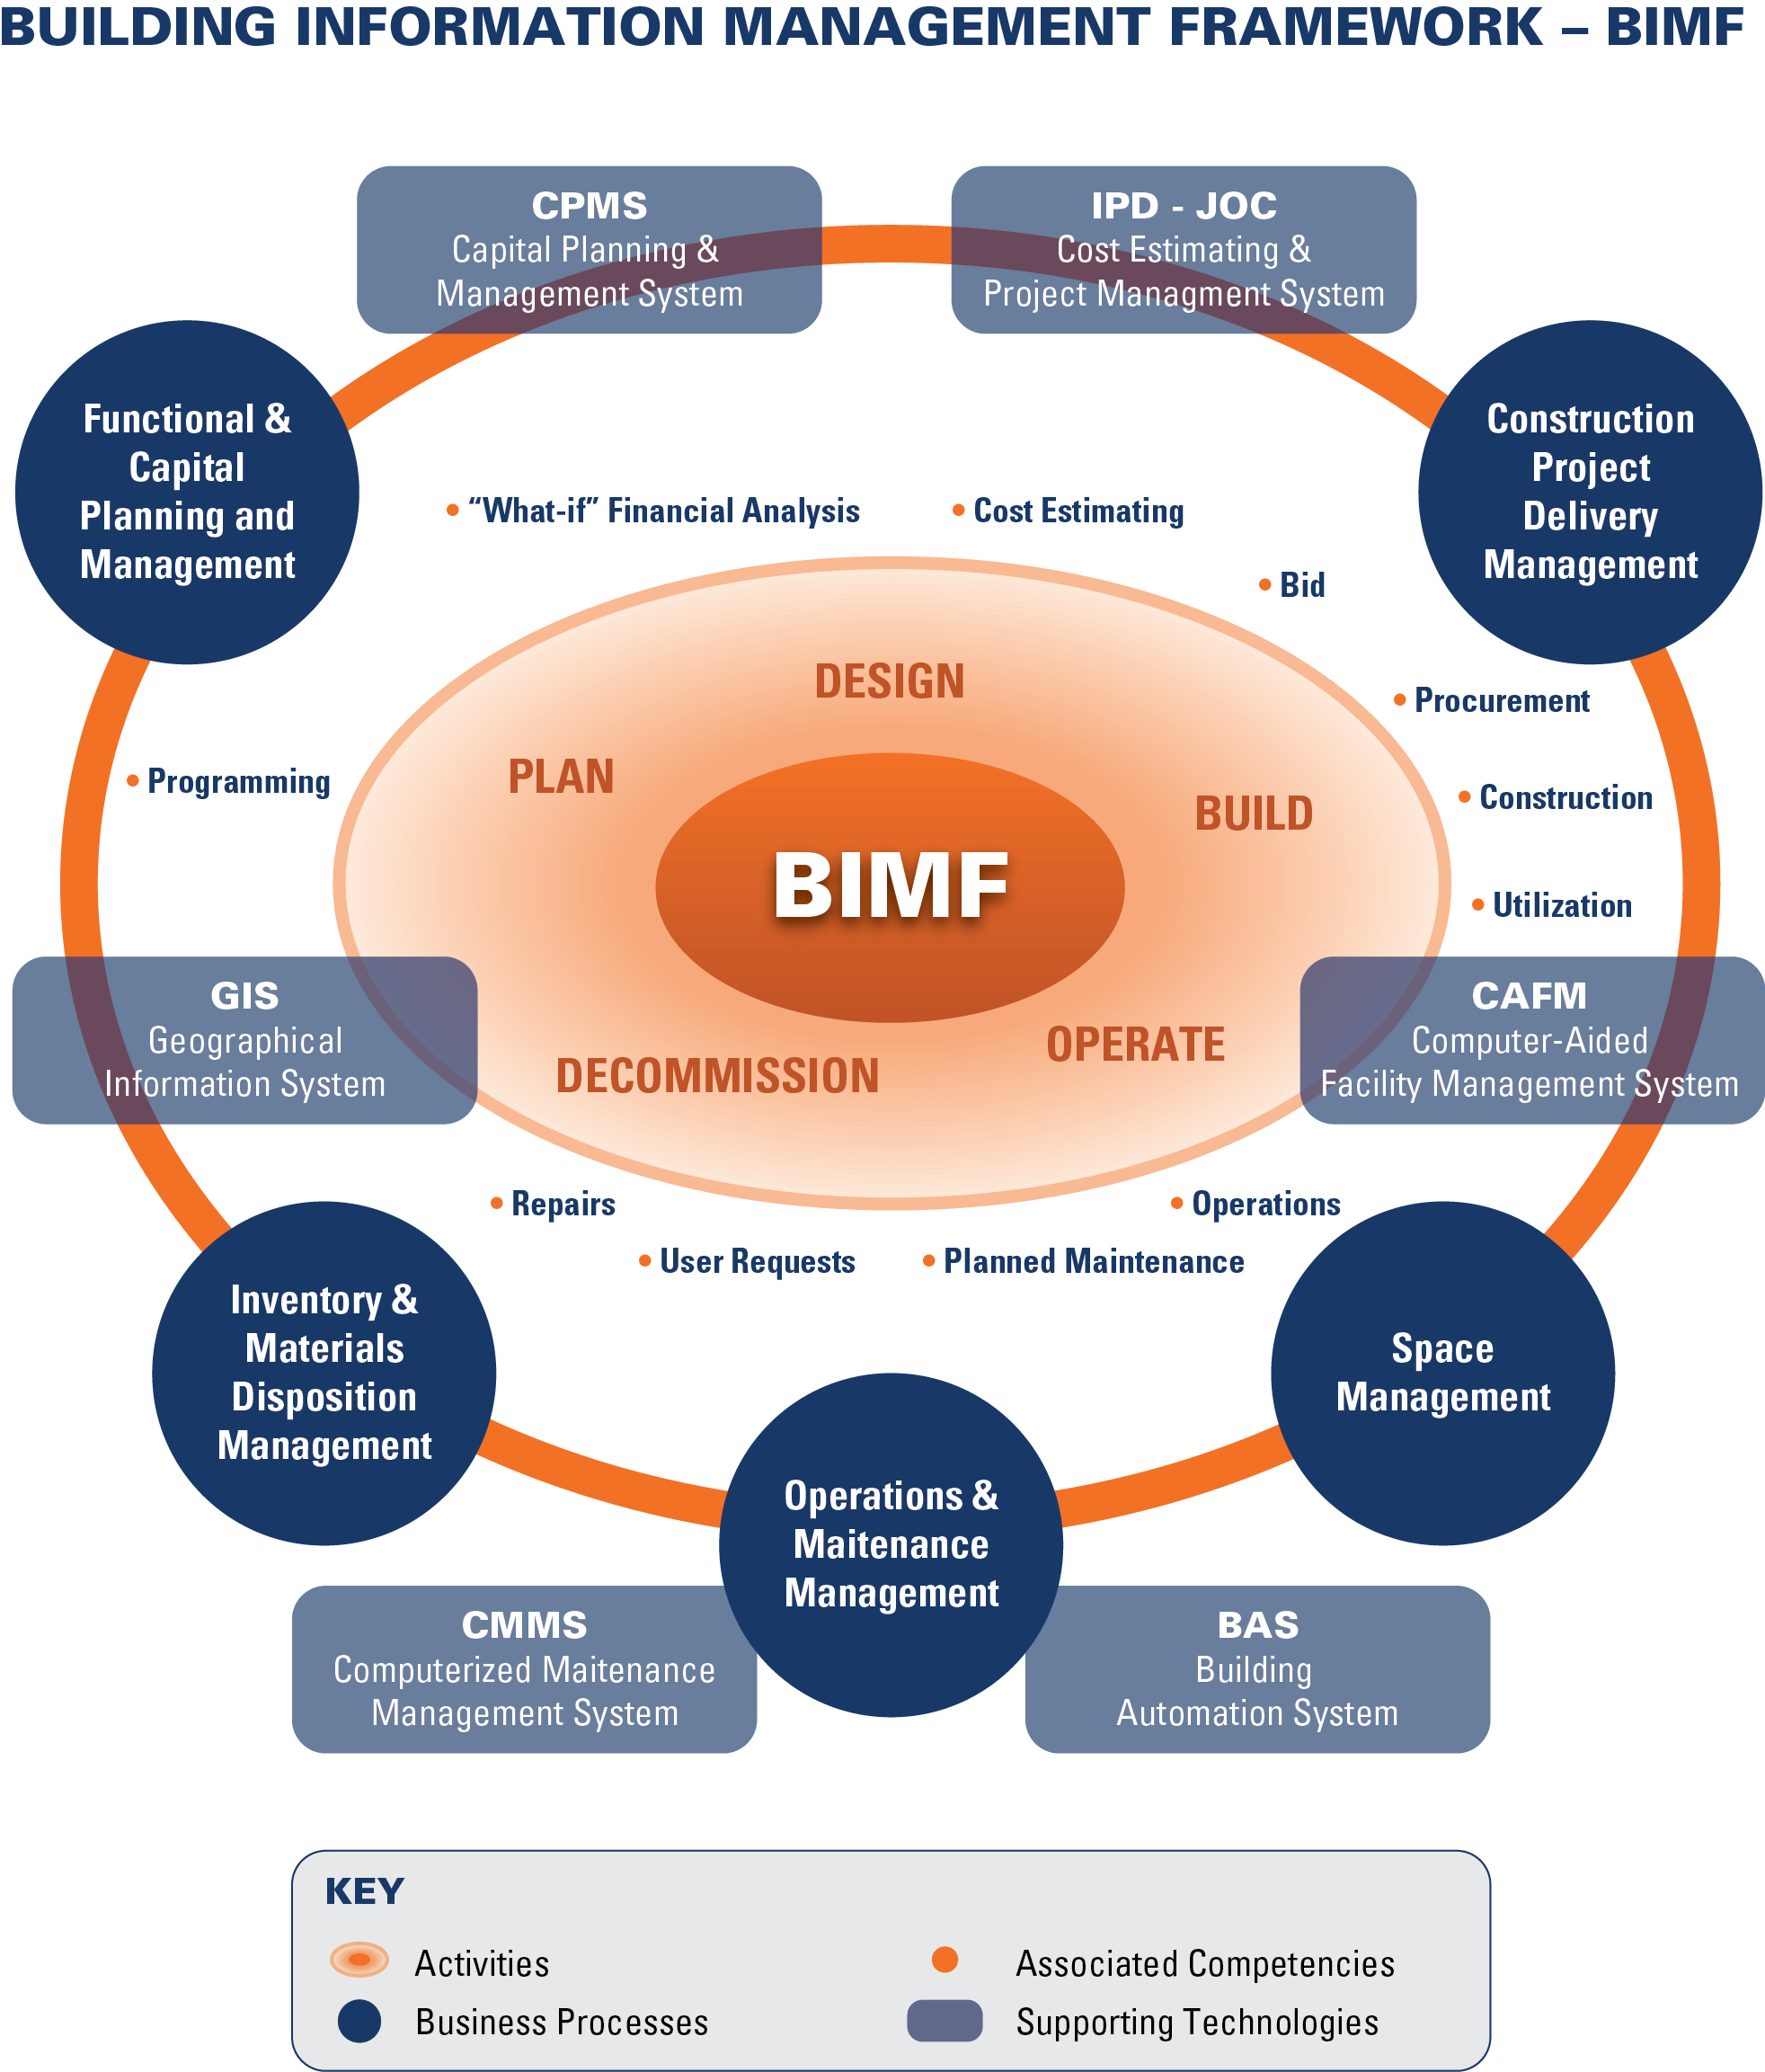 The transportation network business process efficiency lower costs - Bim And The Role Of A Construction Cost Estimator